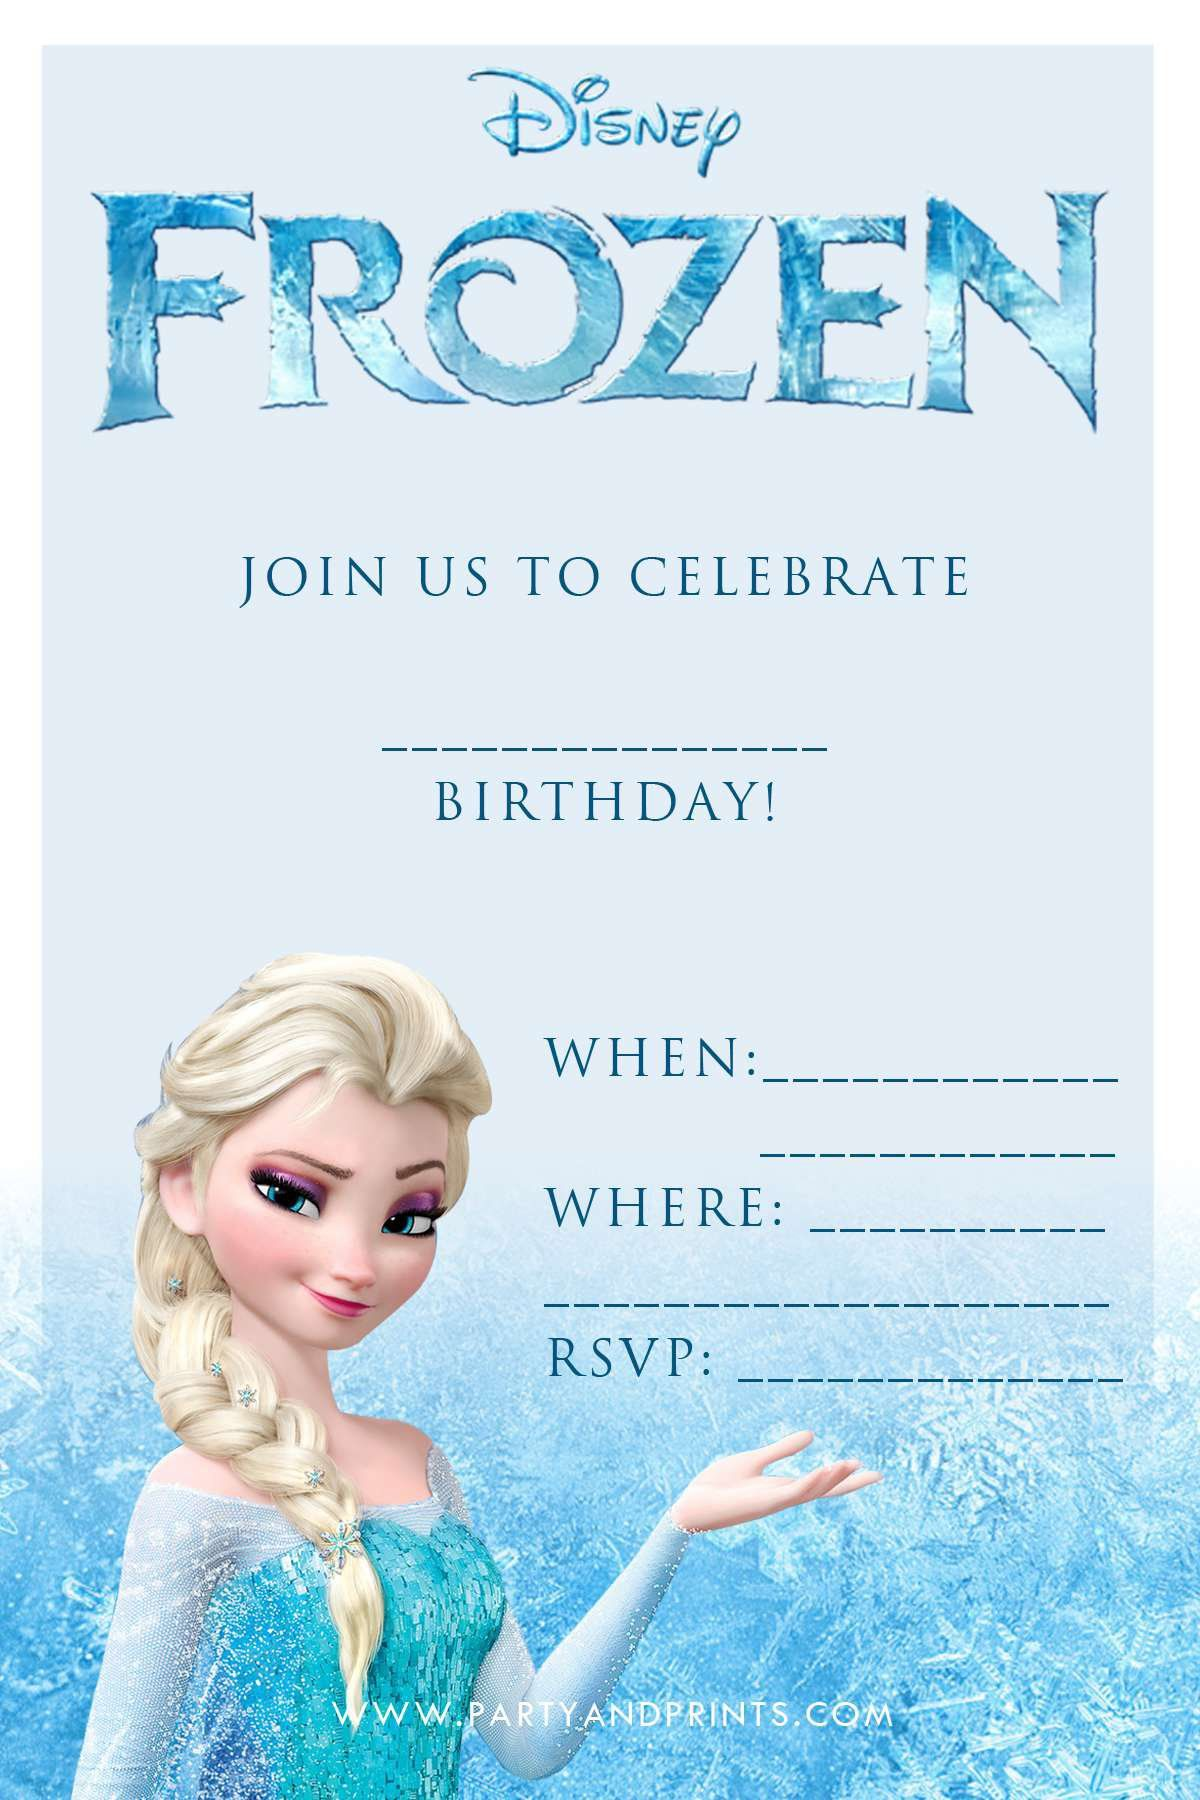 Free online birthday invitations new birthday card princesss free online birthday invitations new birthday card filmwisefo